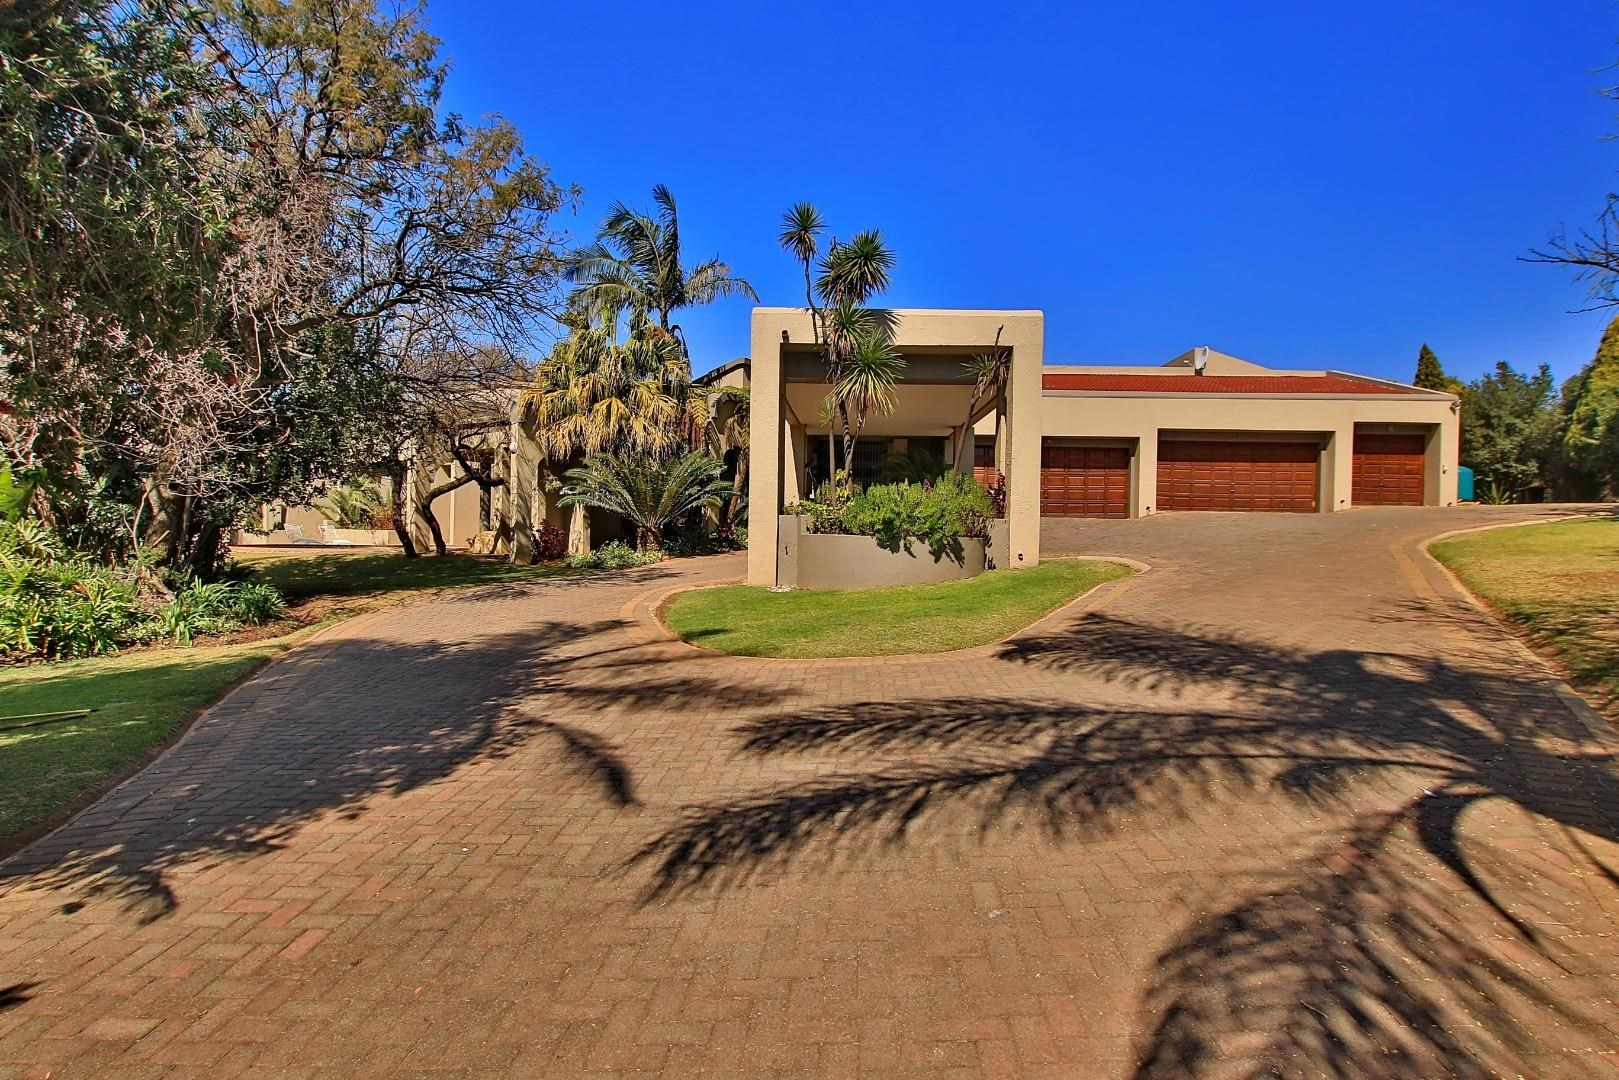 4 Bedroom House for Sale in Ruimsig